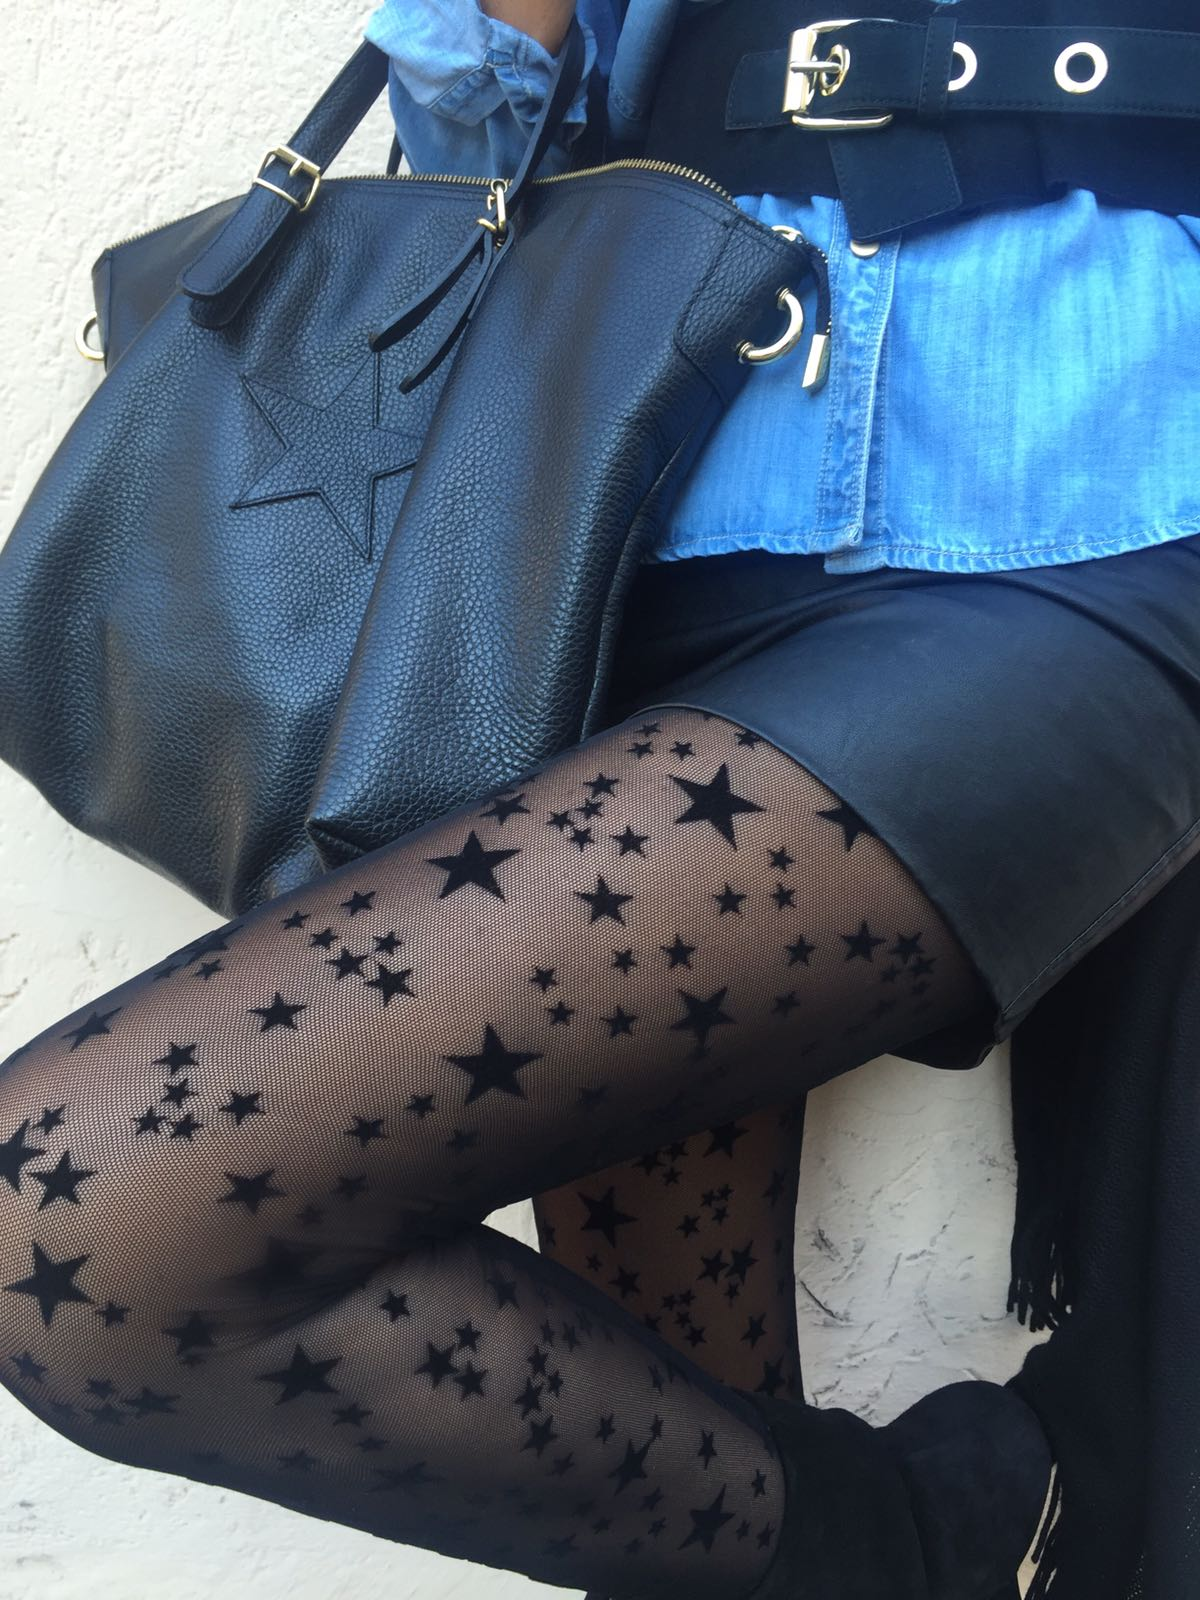 Look autunnale, calze a stelle